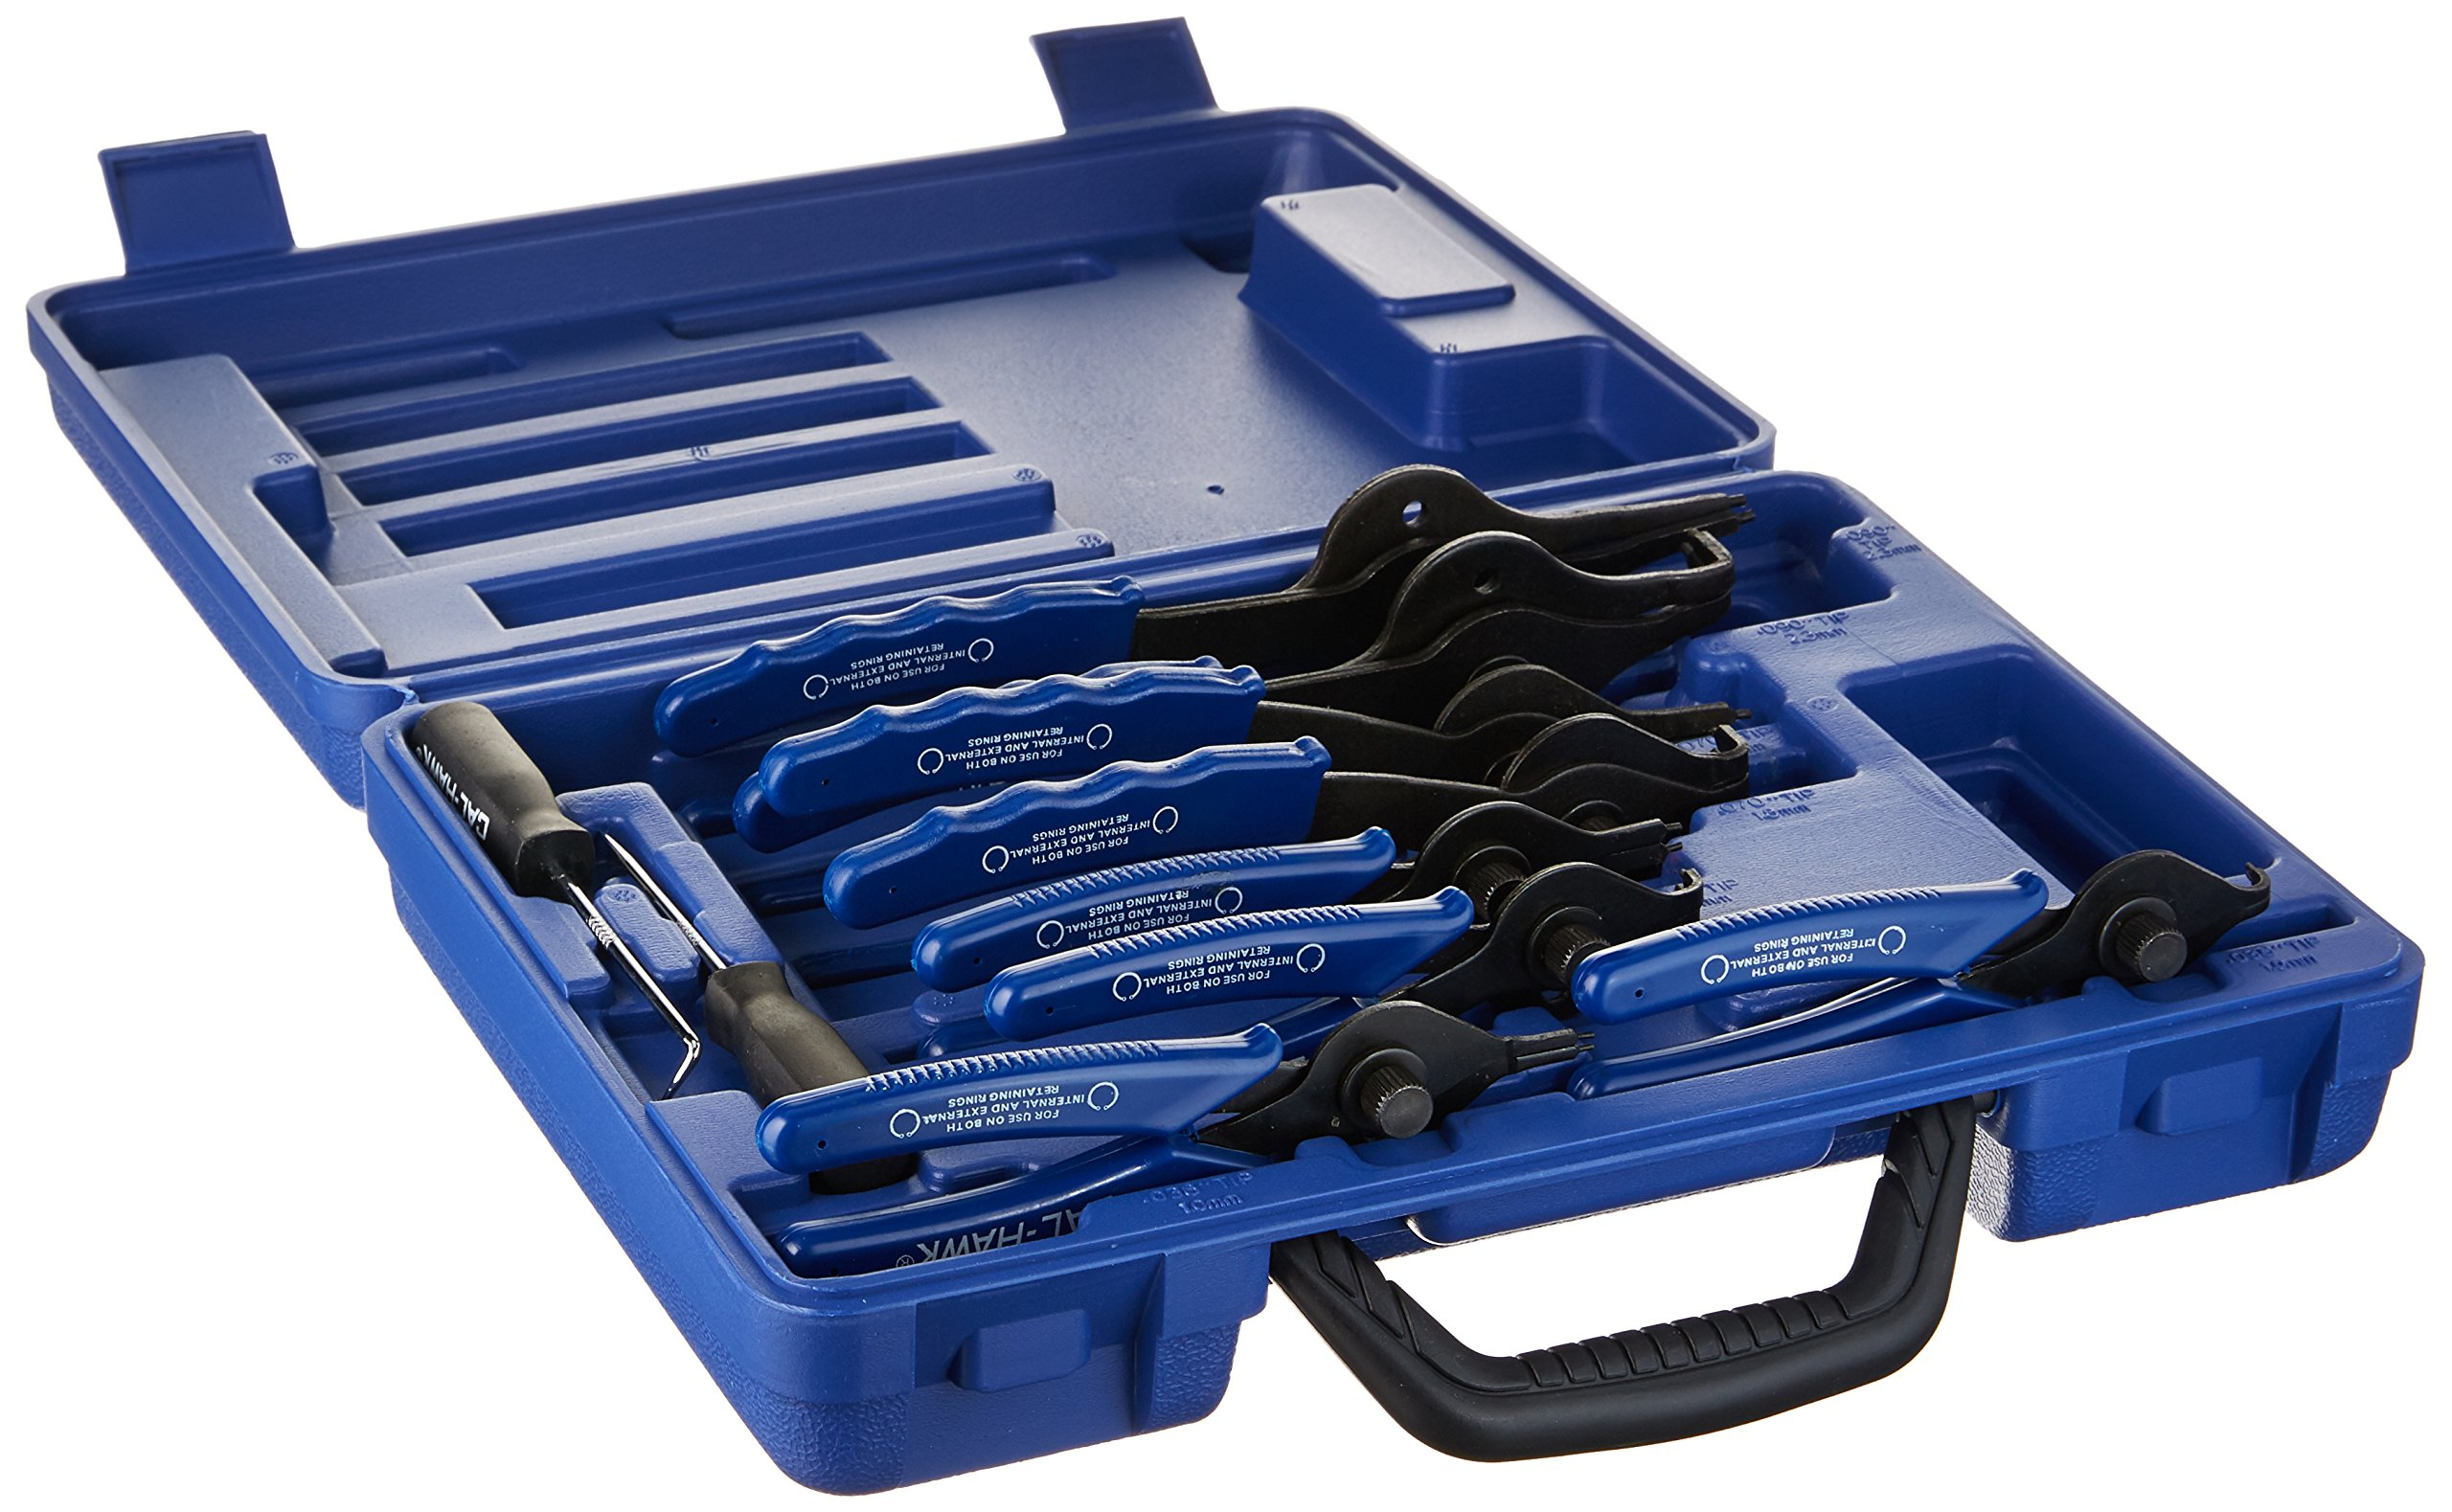 Cal Hawk Tools CPLSR11P Heavy Duty Snap Ring Pliers Set (11 Piece) by Cal Hawk Tools